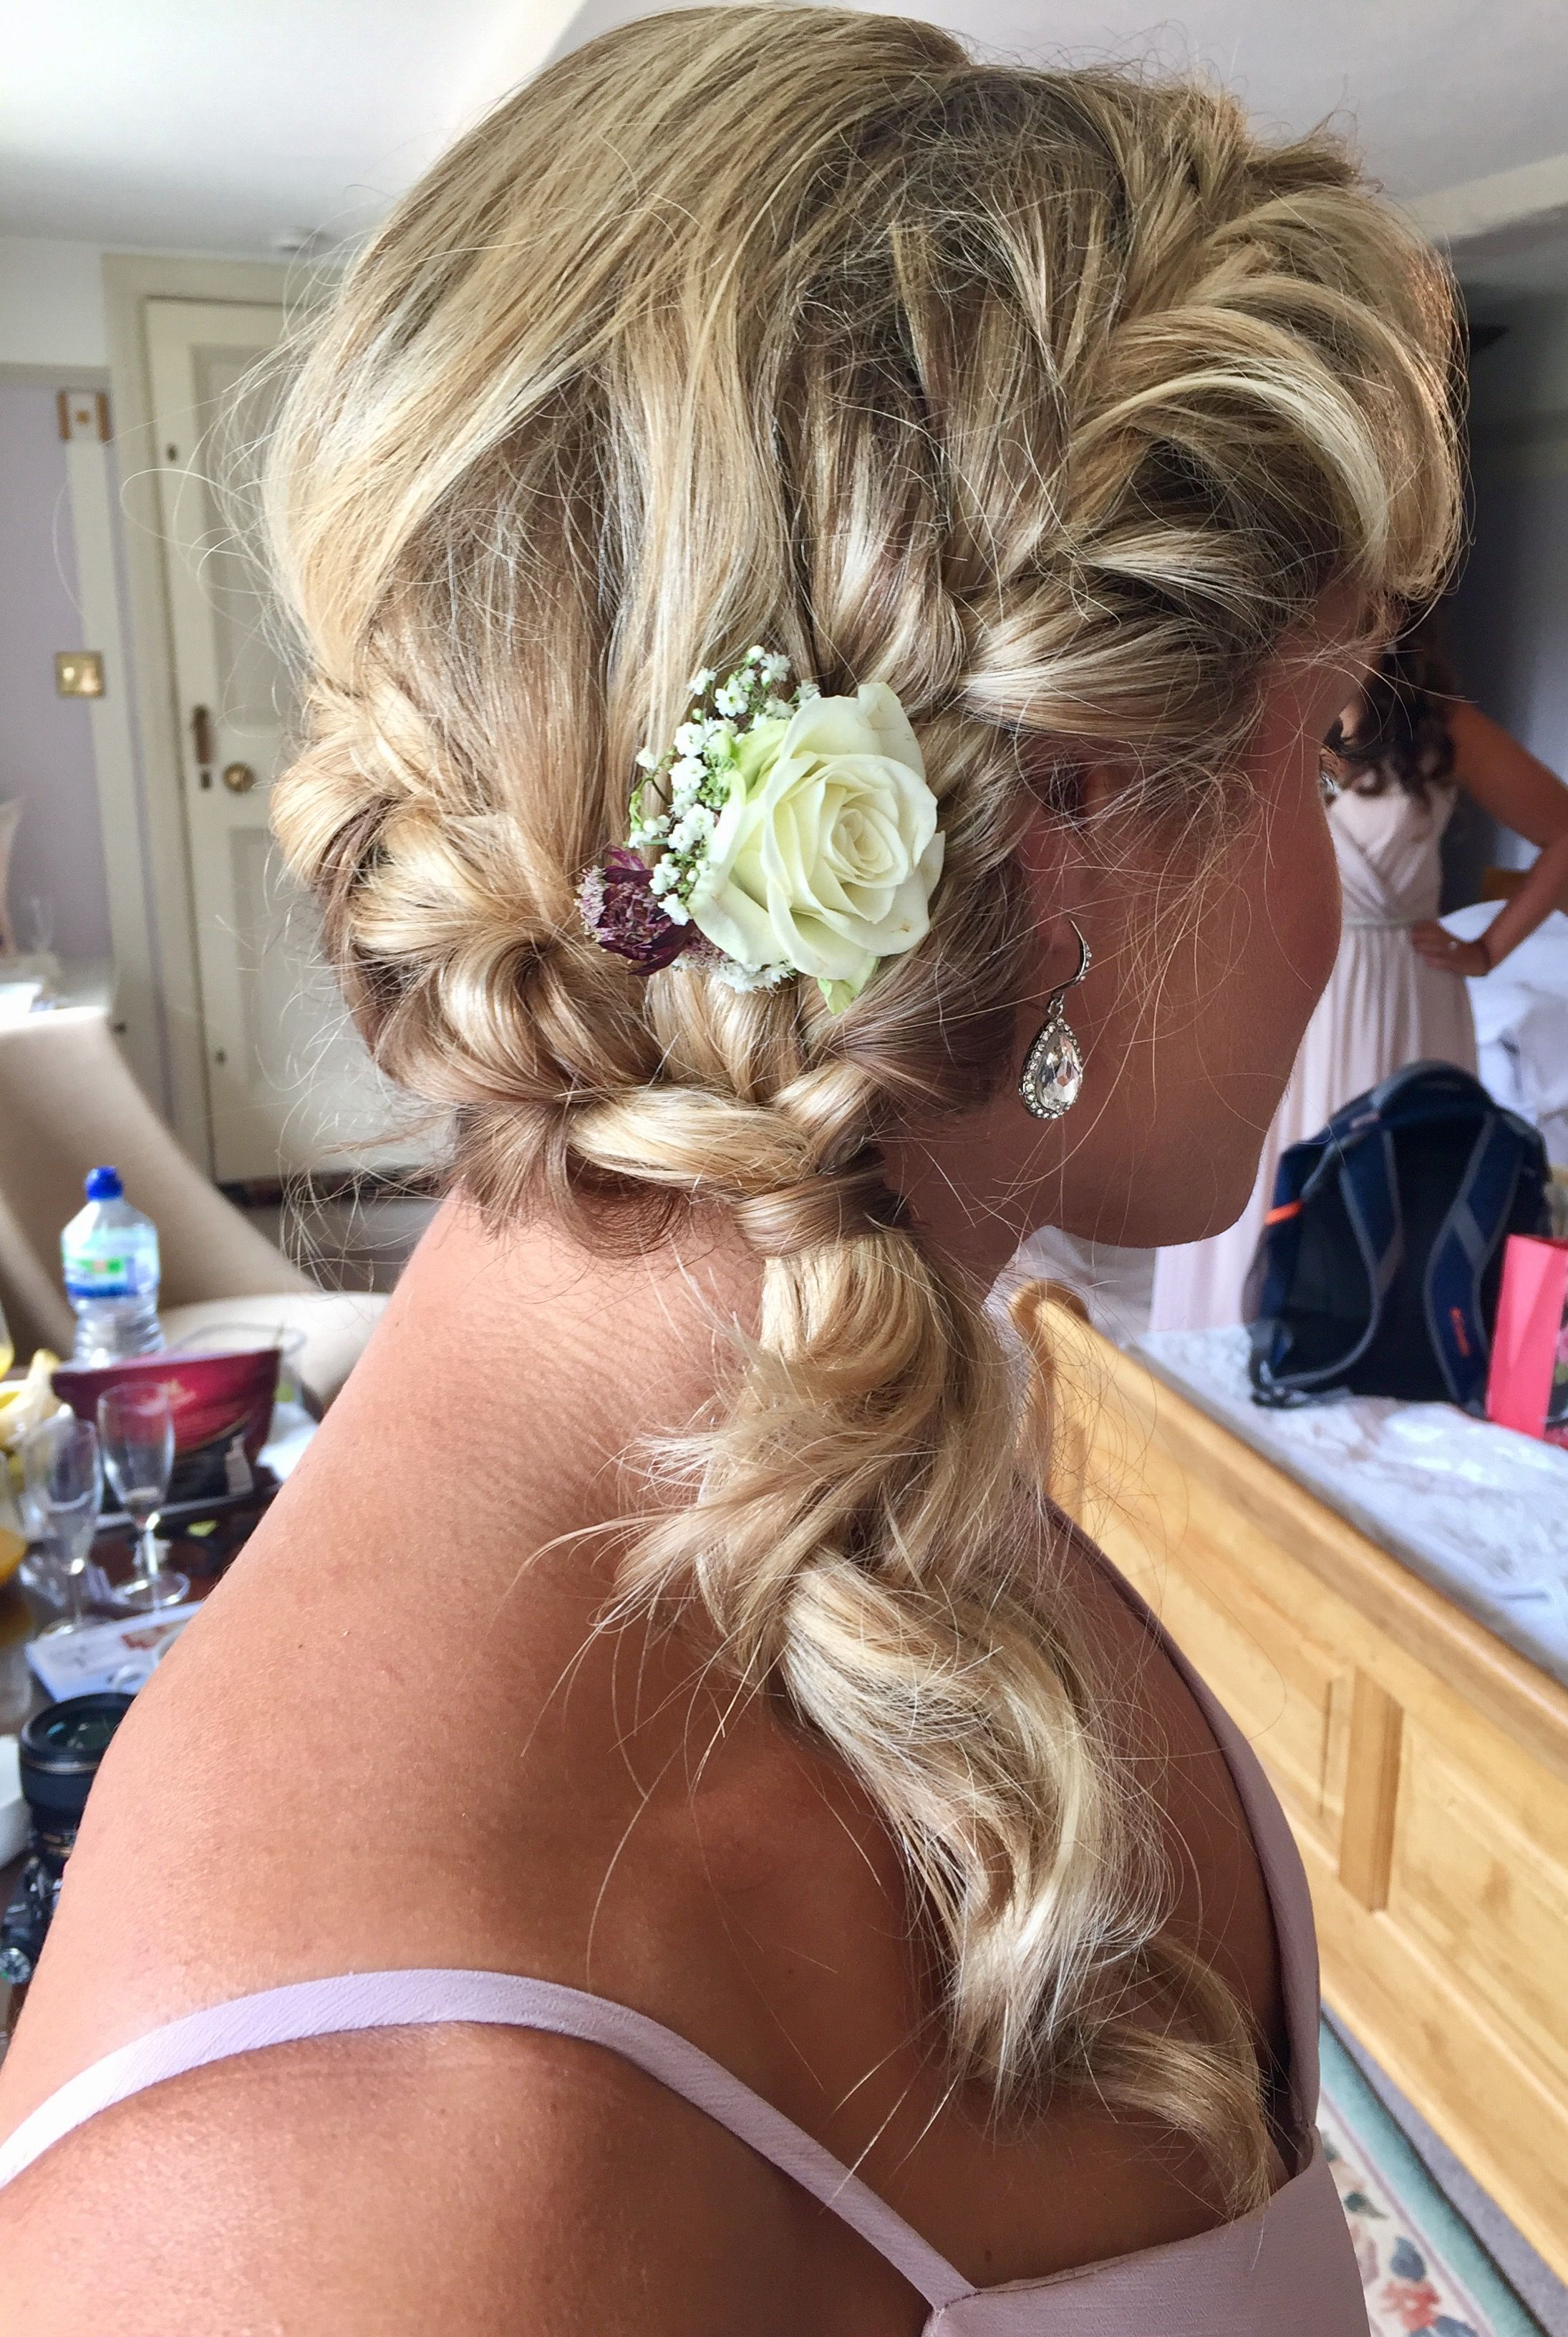 bridal french plaits into side curls with flowers | wedding hair